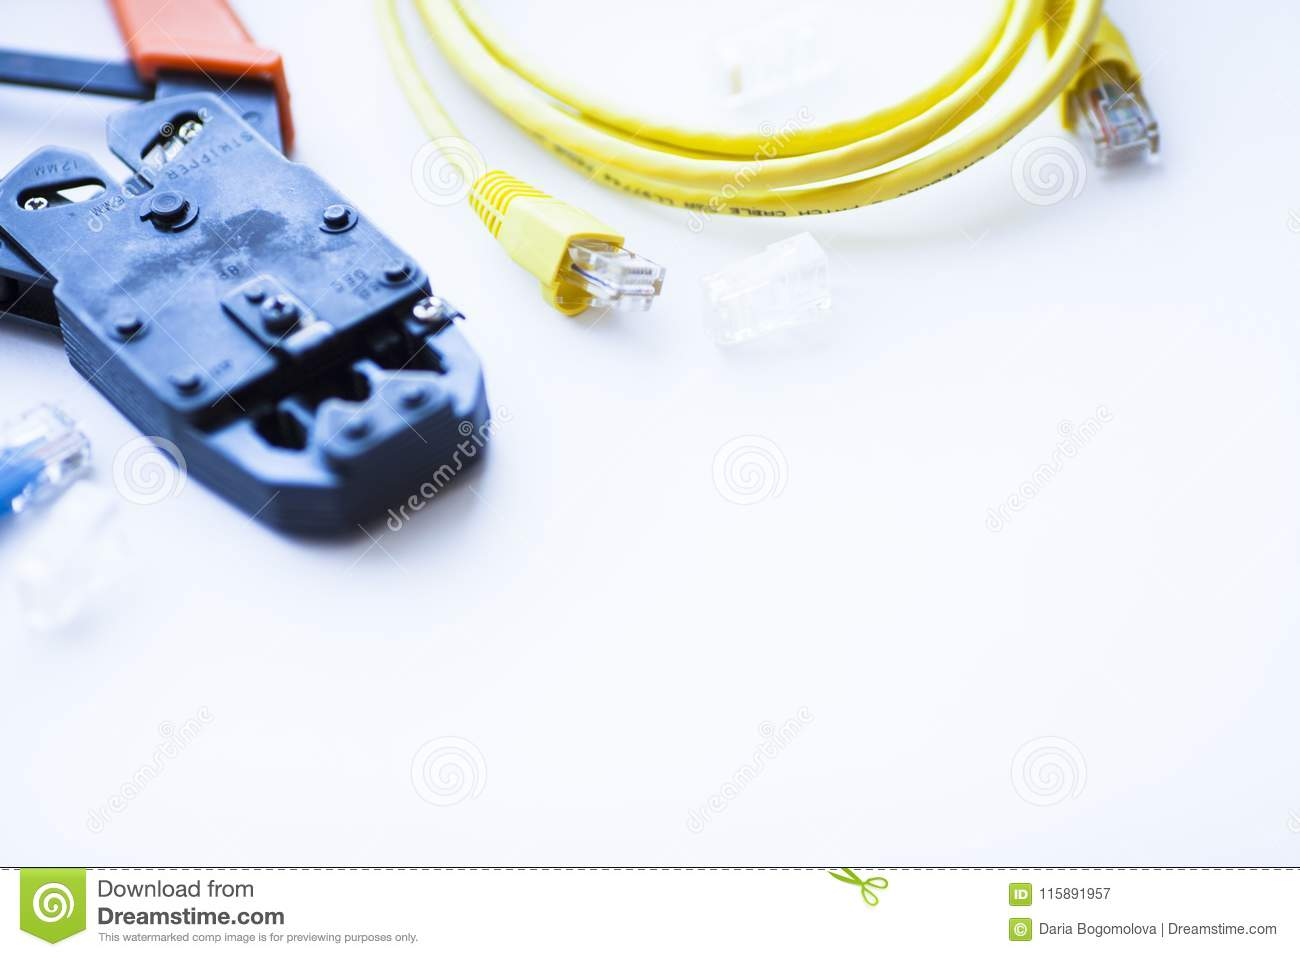 SKS and engineering concept.Set of connectors, ethernet and console cables, crimp tool on the white background.